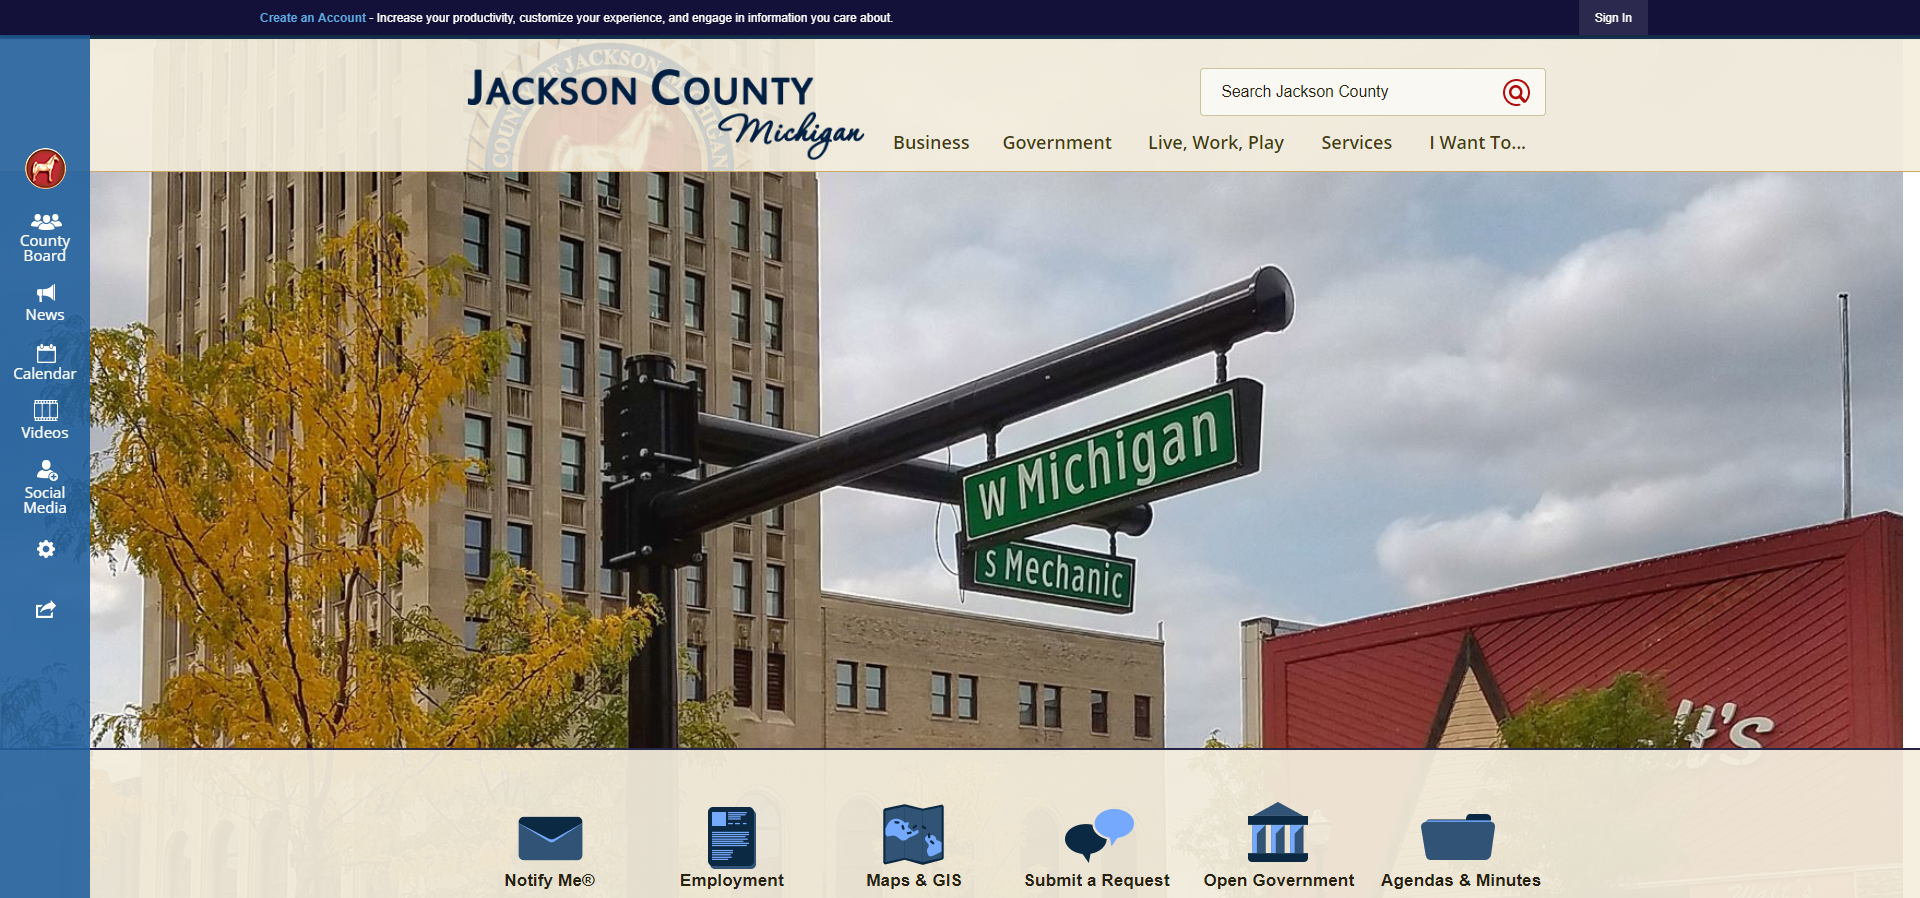 Jackson_County_MI_2018_Digital_Counties_Award_Winner